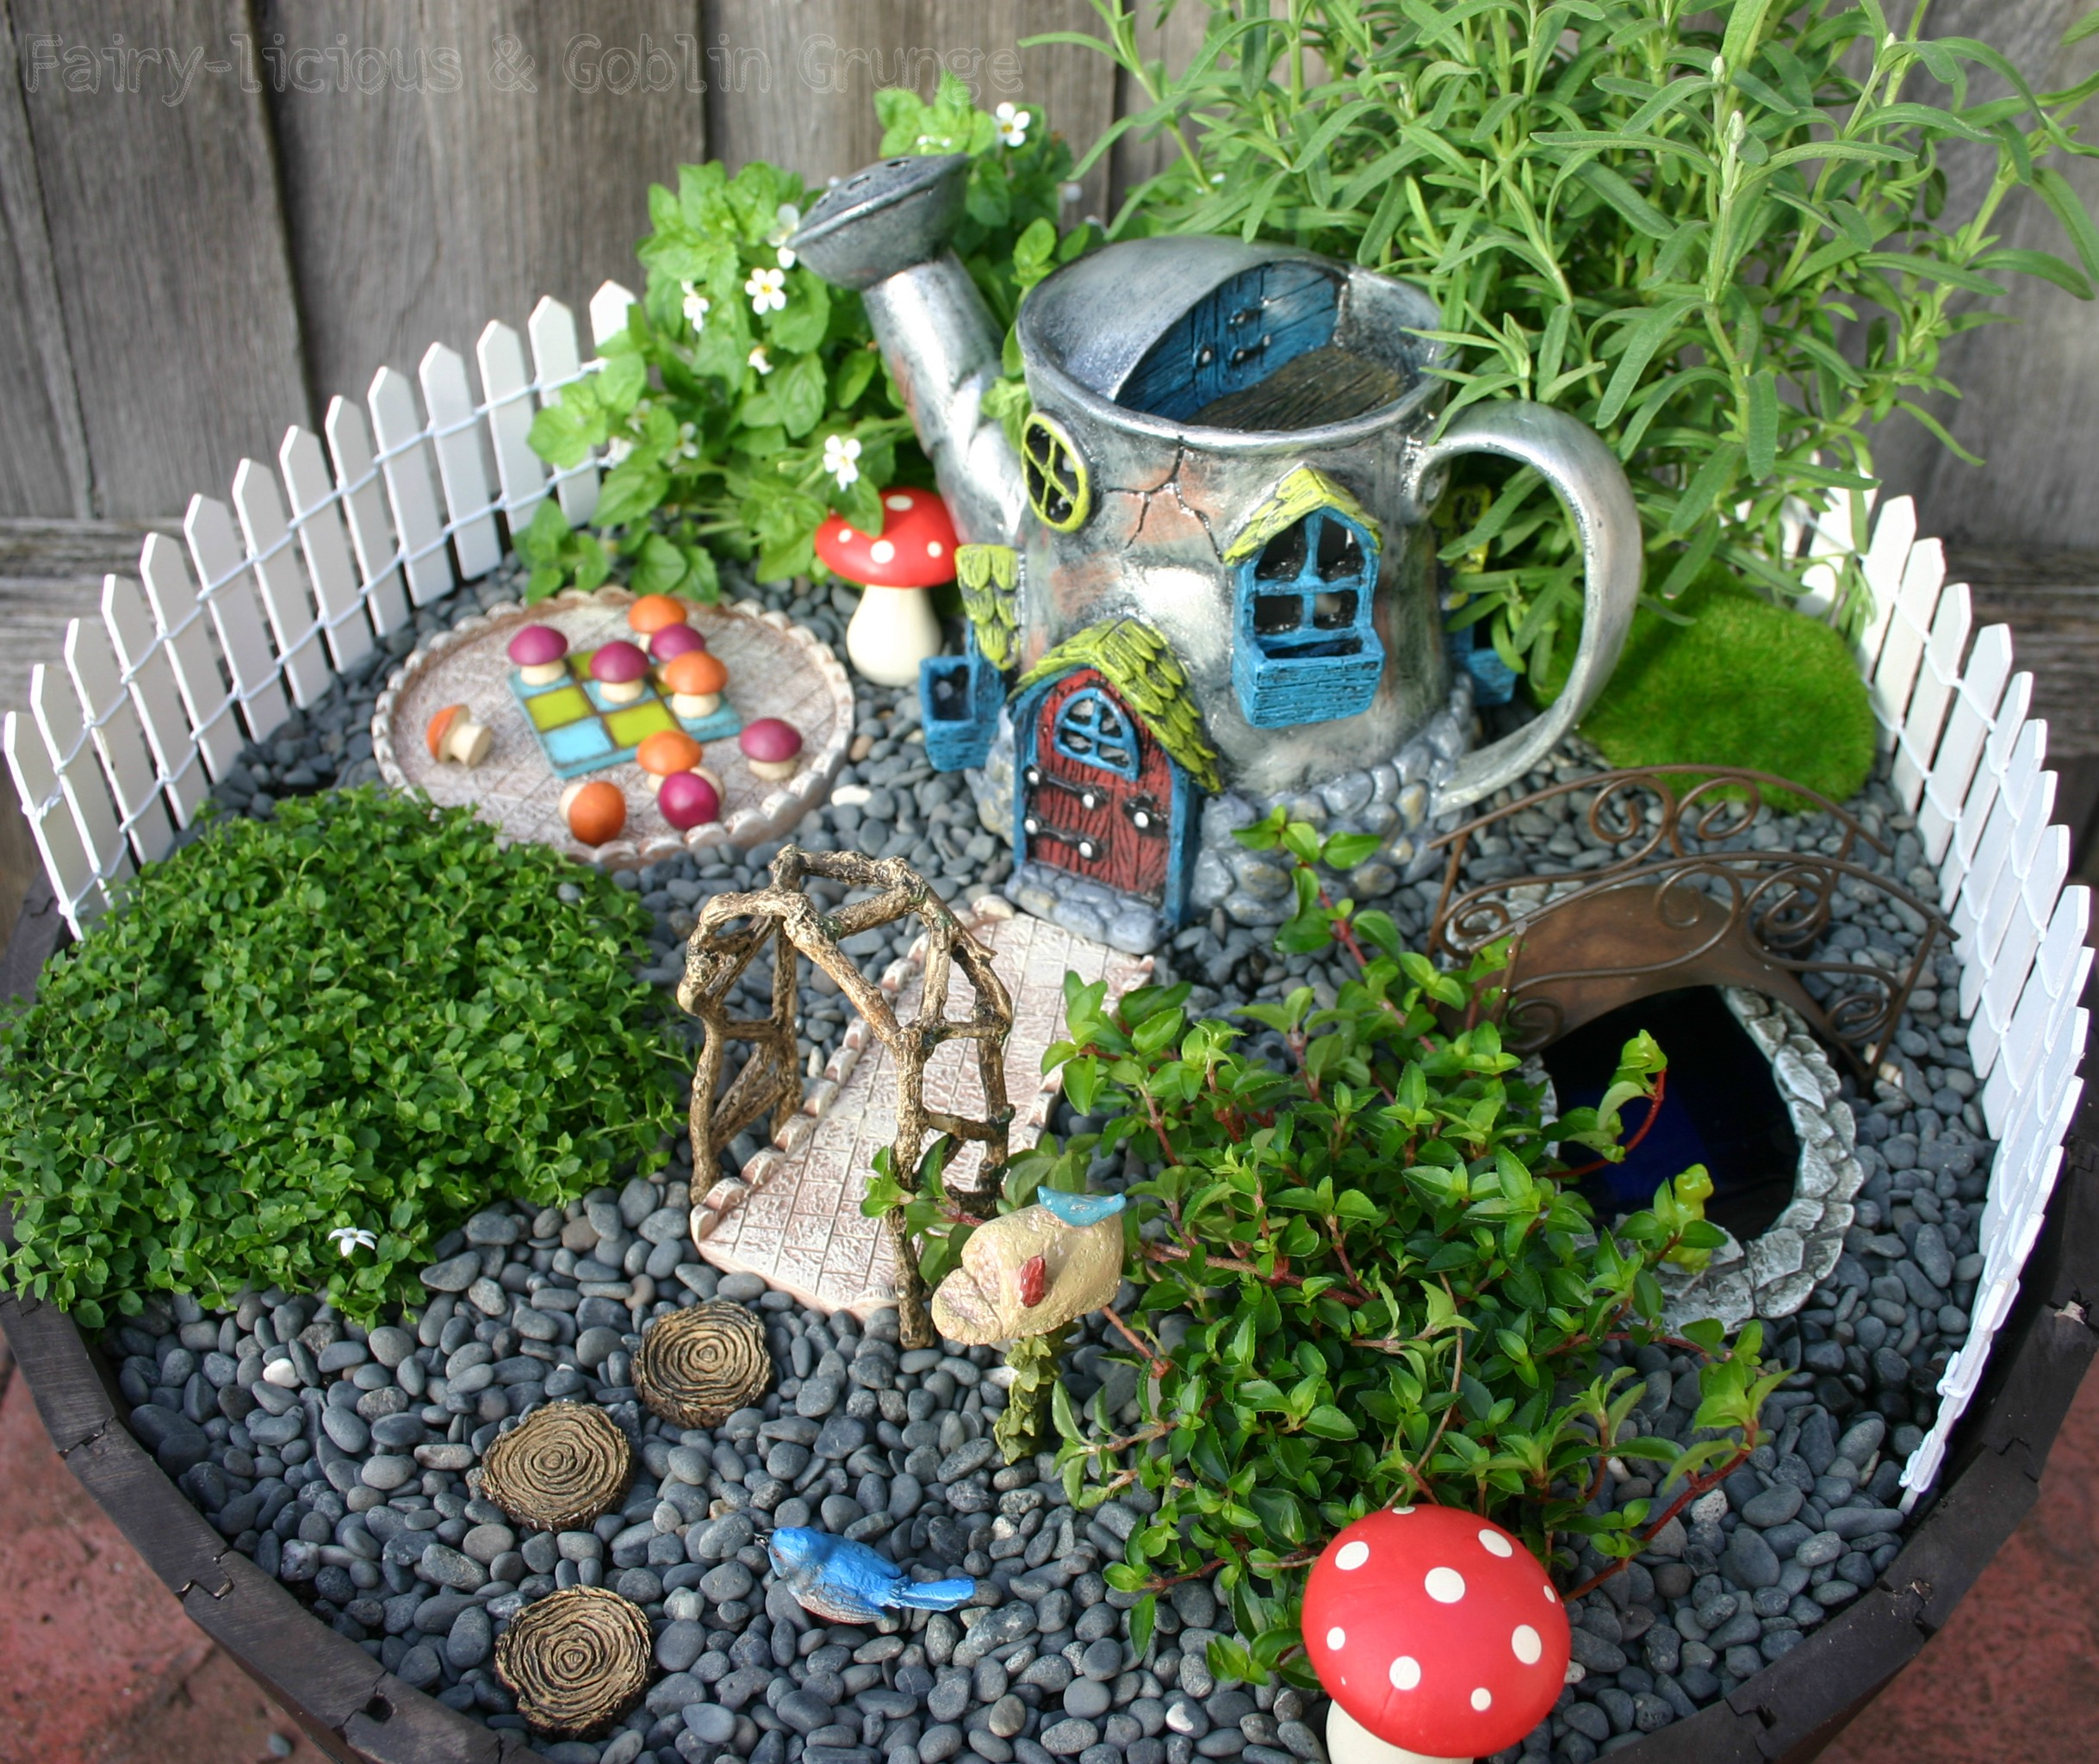 15 fabulous fairy garden ideas - live diy ideas